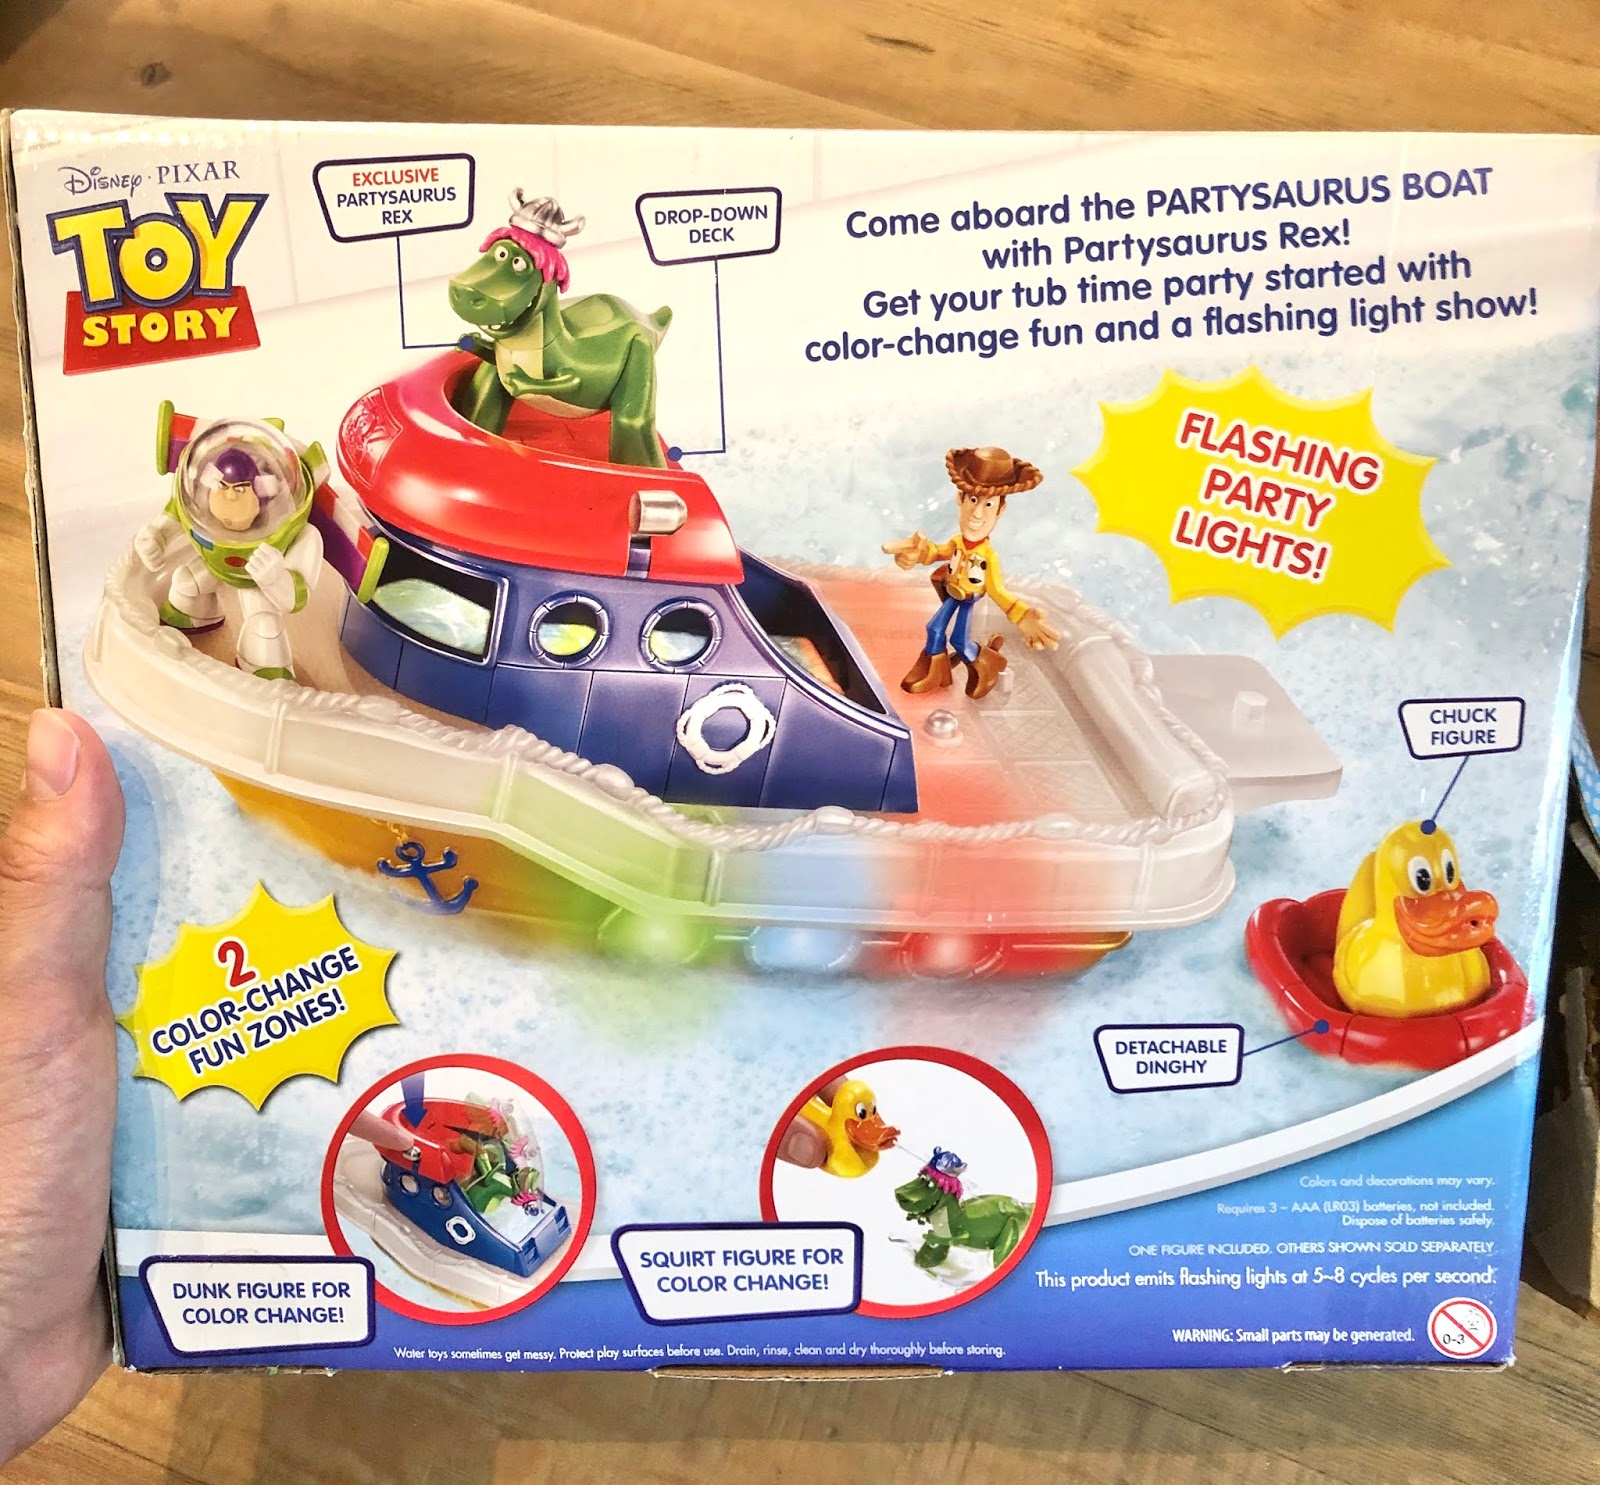 toy story Partysaurus Boat Playset